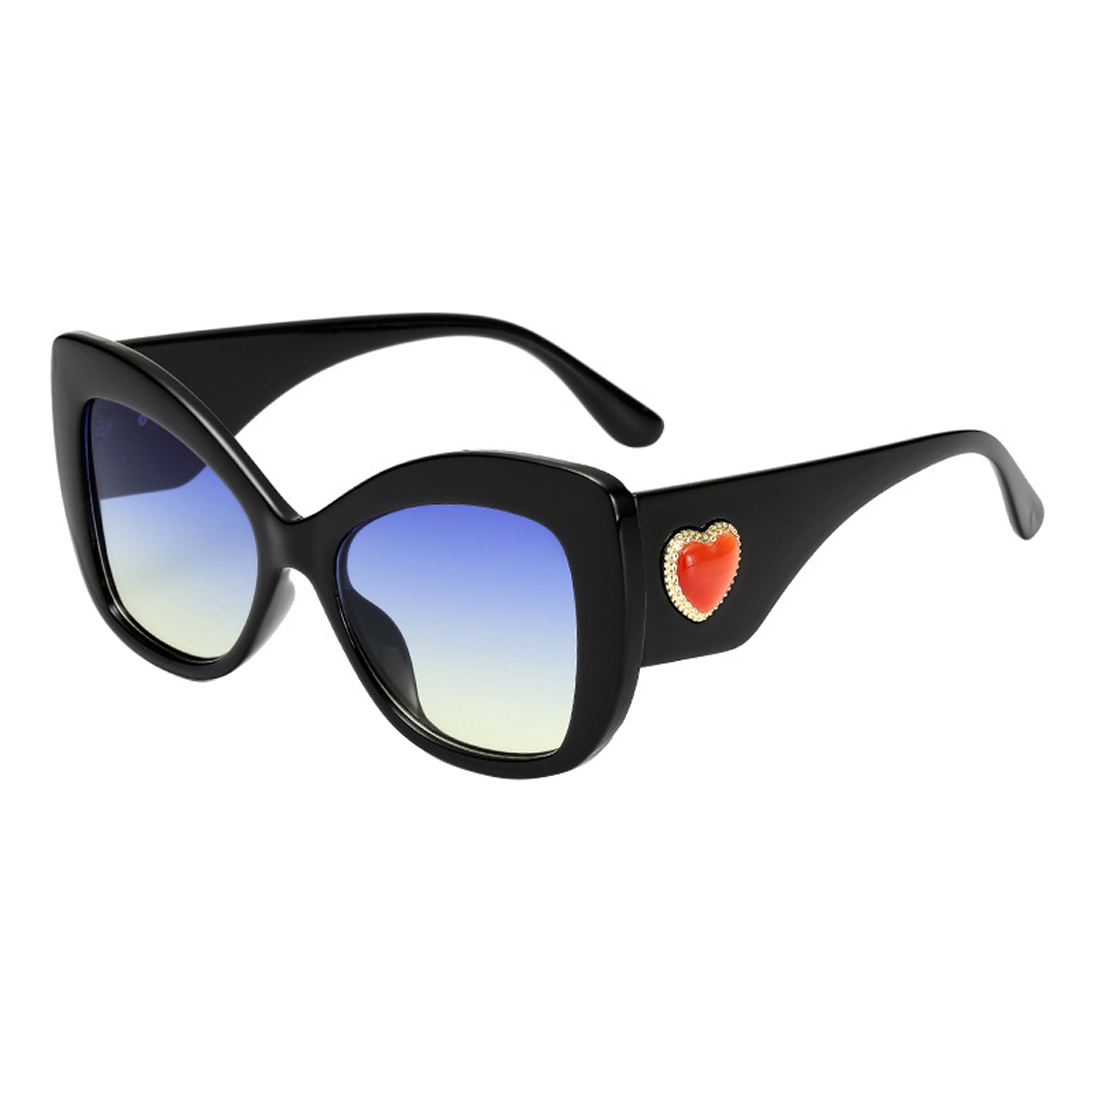 2019 New Fashion Sculpted Cat Eye Sunglasses Women Ladies Oversized Luxury Brand Deisgner Red Heart Sun Glasses For Female Black in Women 39 s Sunglasses from Apparel Accessories